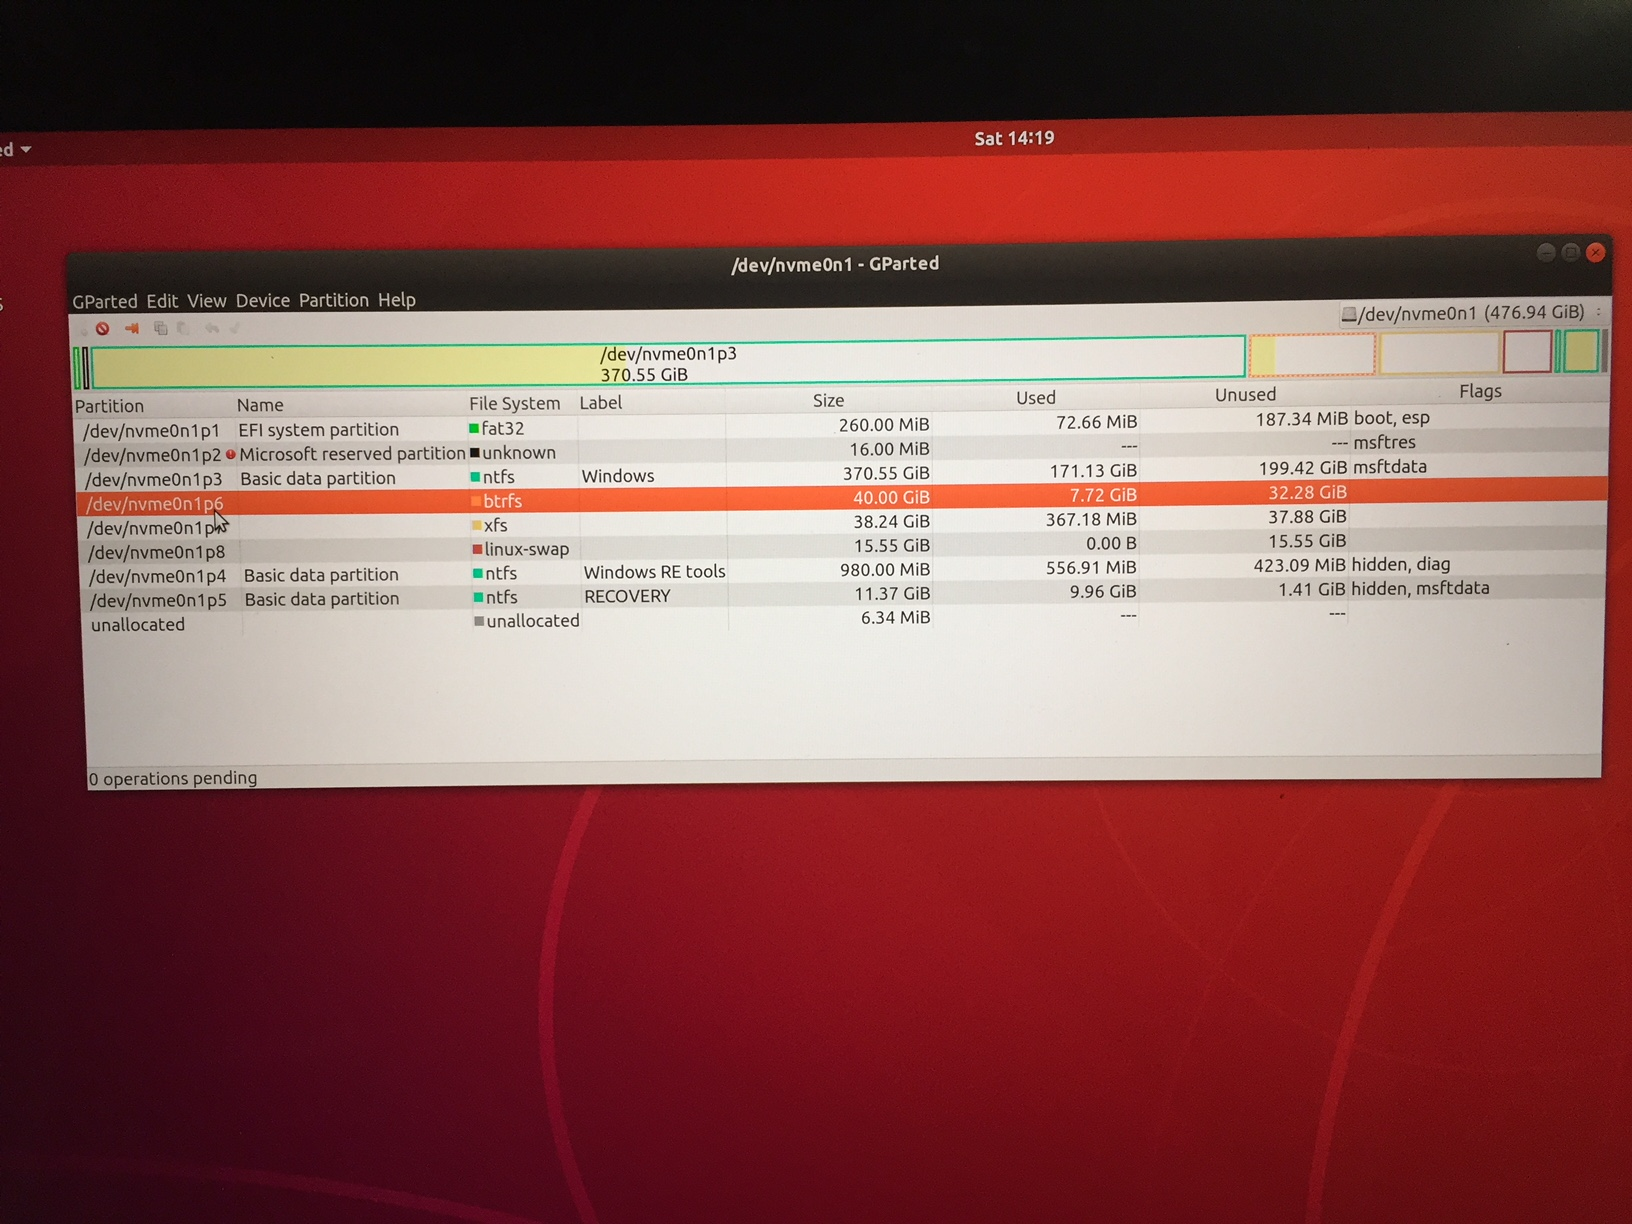 Solved: Ubuntu and Win 10 dual boot Envy 17 laptop - HP Support